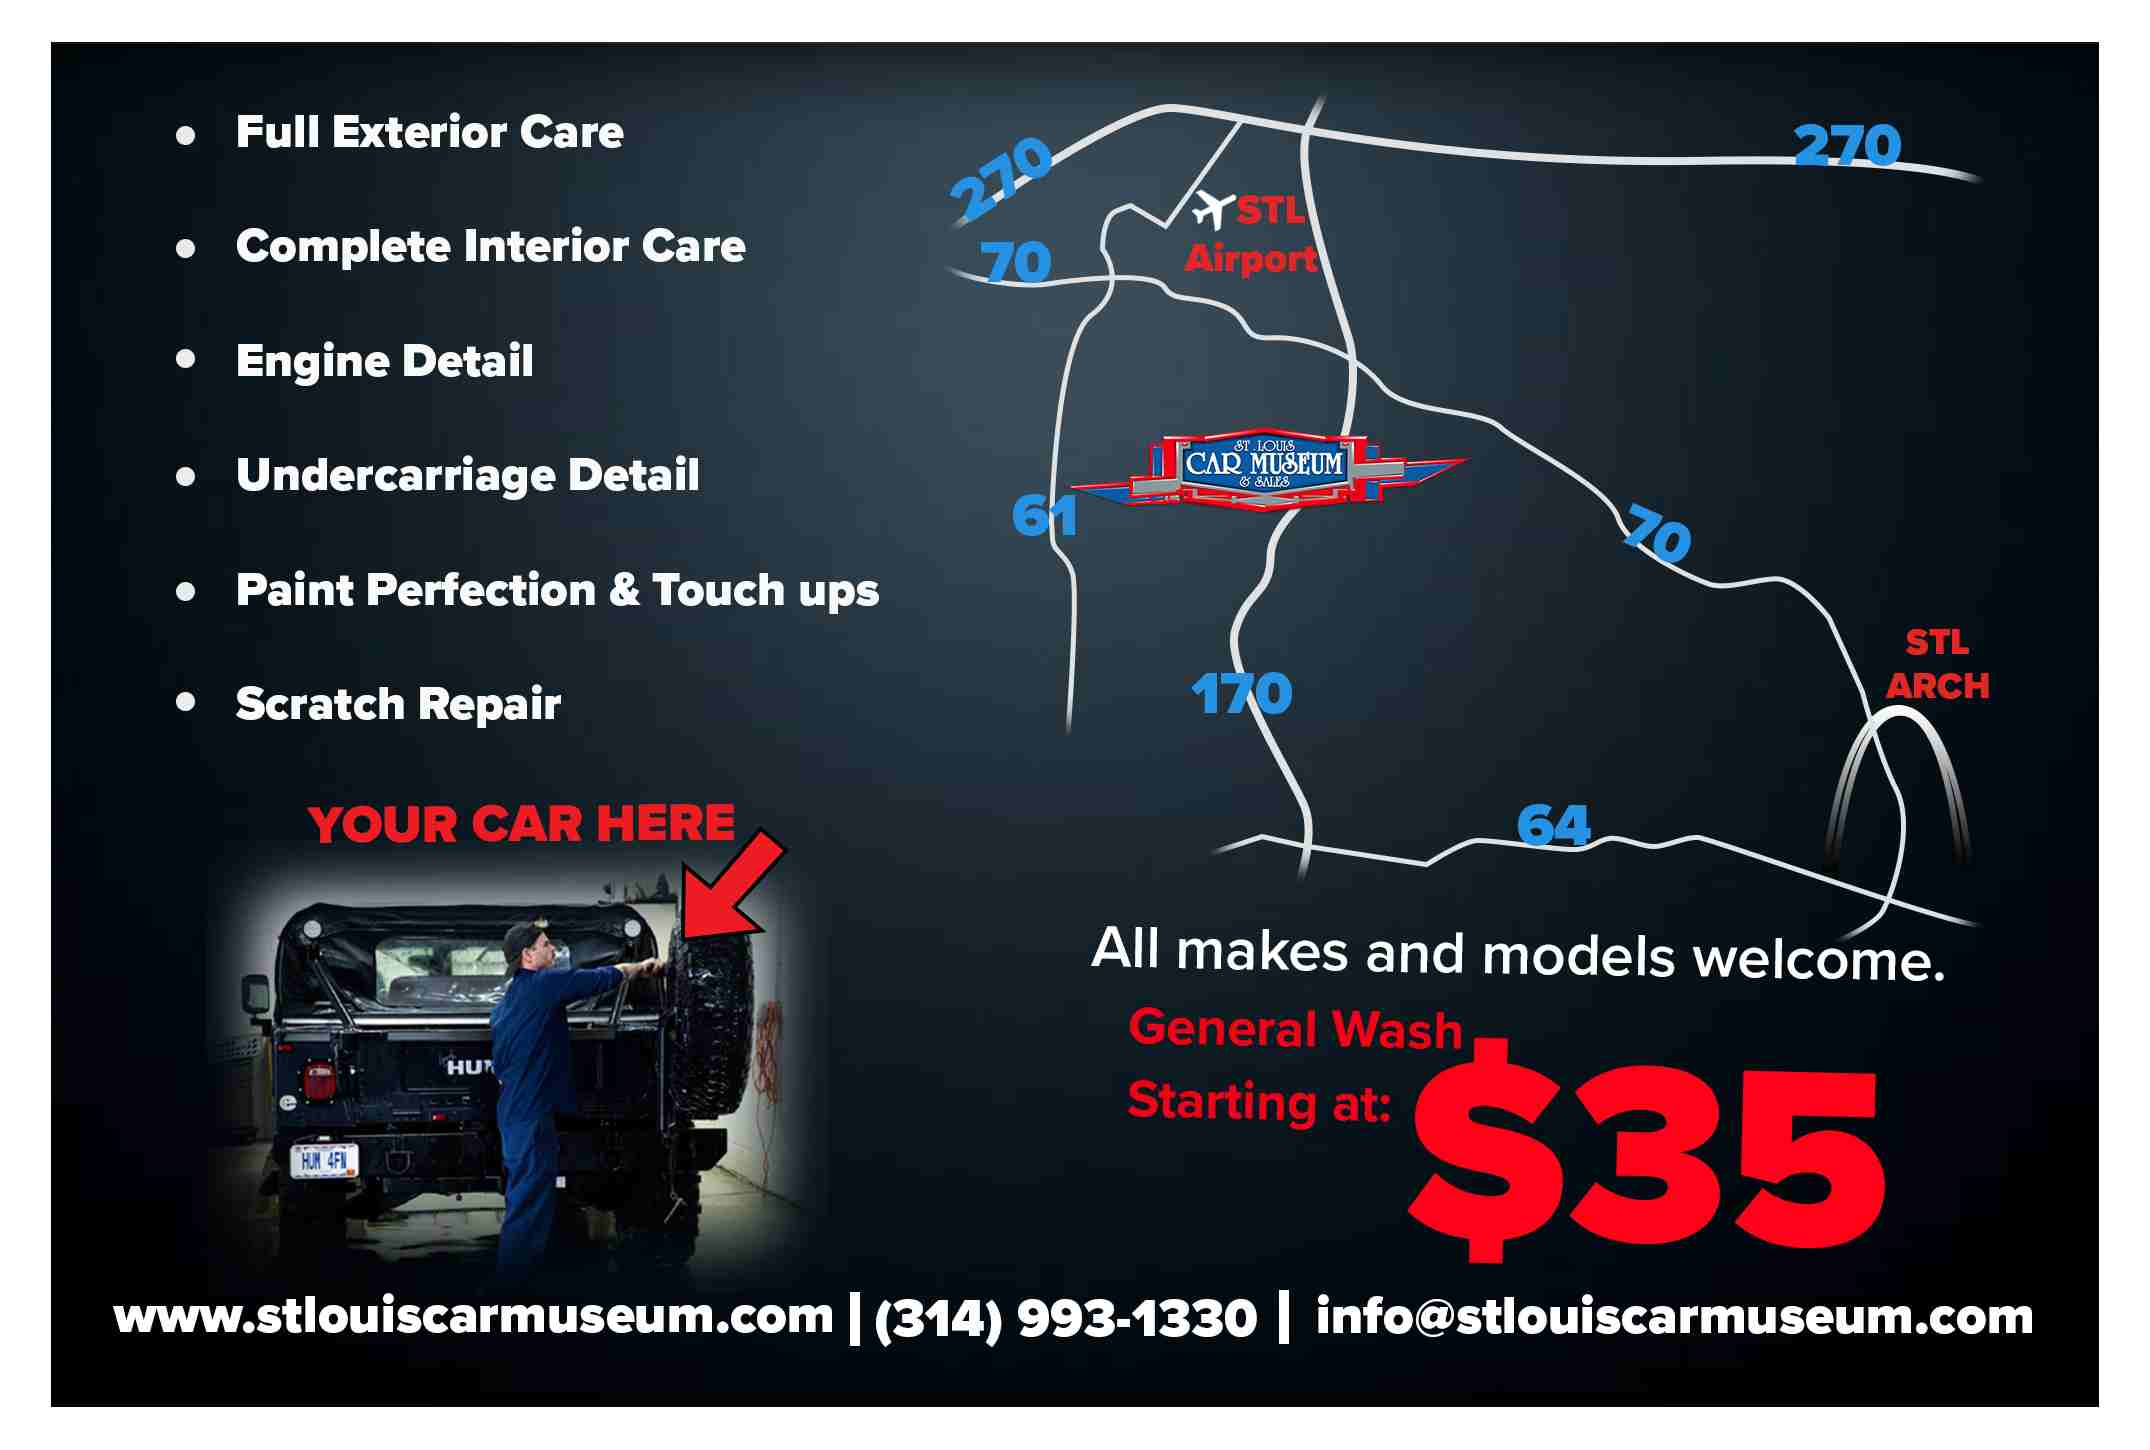 complete vehicle detailing at the St. Louis Car Museum